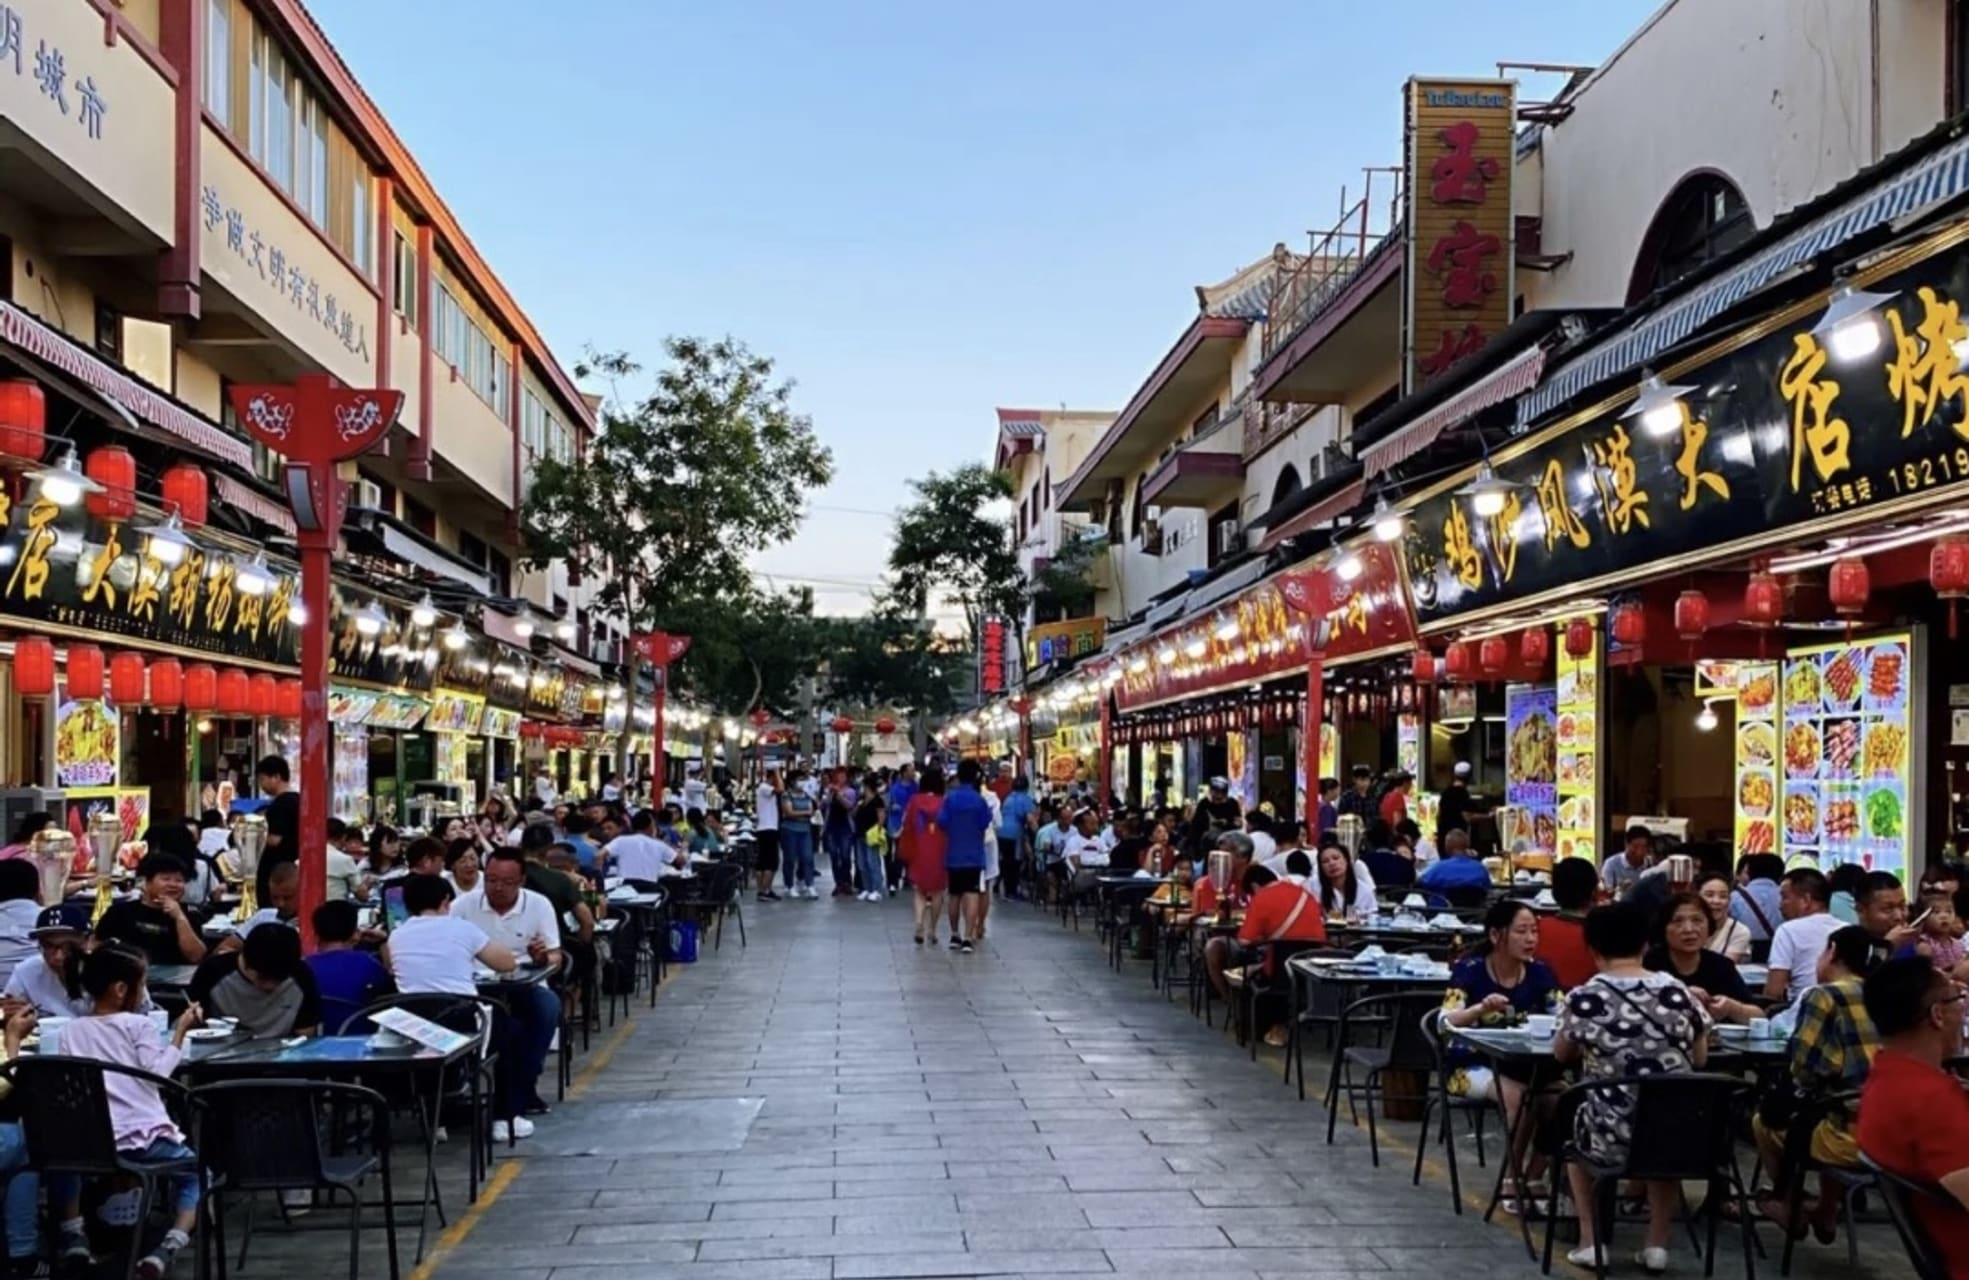 Hexi Corridor (China's Silk Road) - Dunhuang Night Market: Today's Update to a Silk Road Oasis